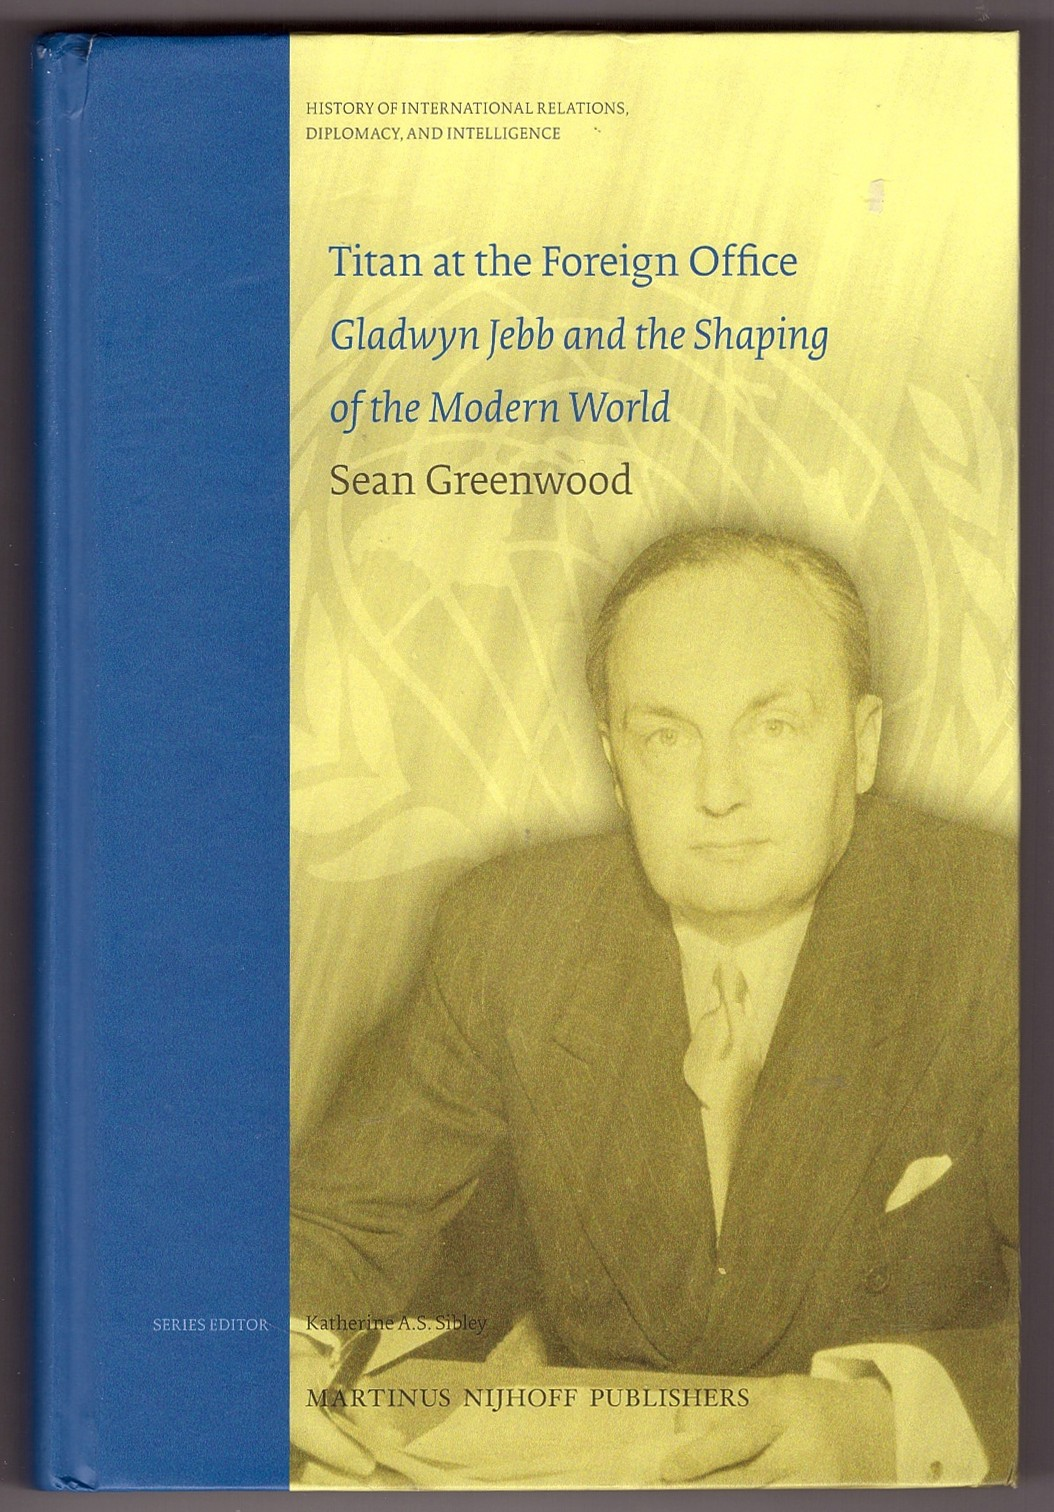 Image for Titan At the Foreign Office  Gladwyn Jebb and the Shaping of the Modern World